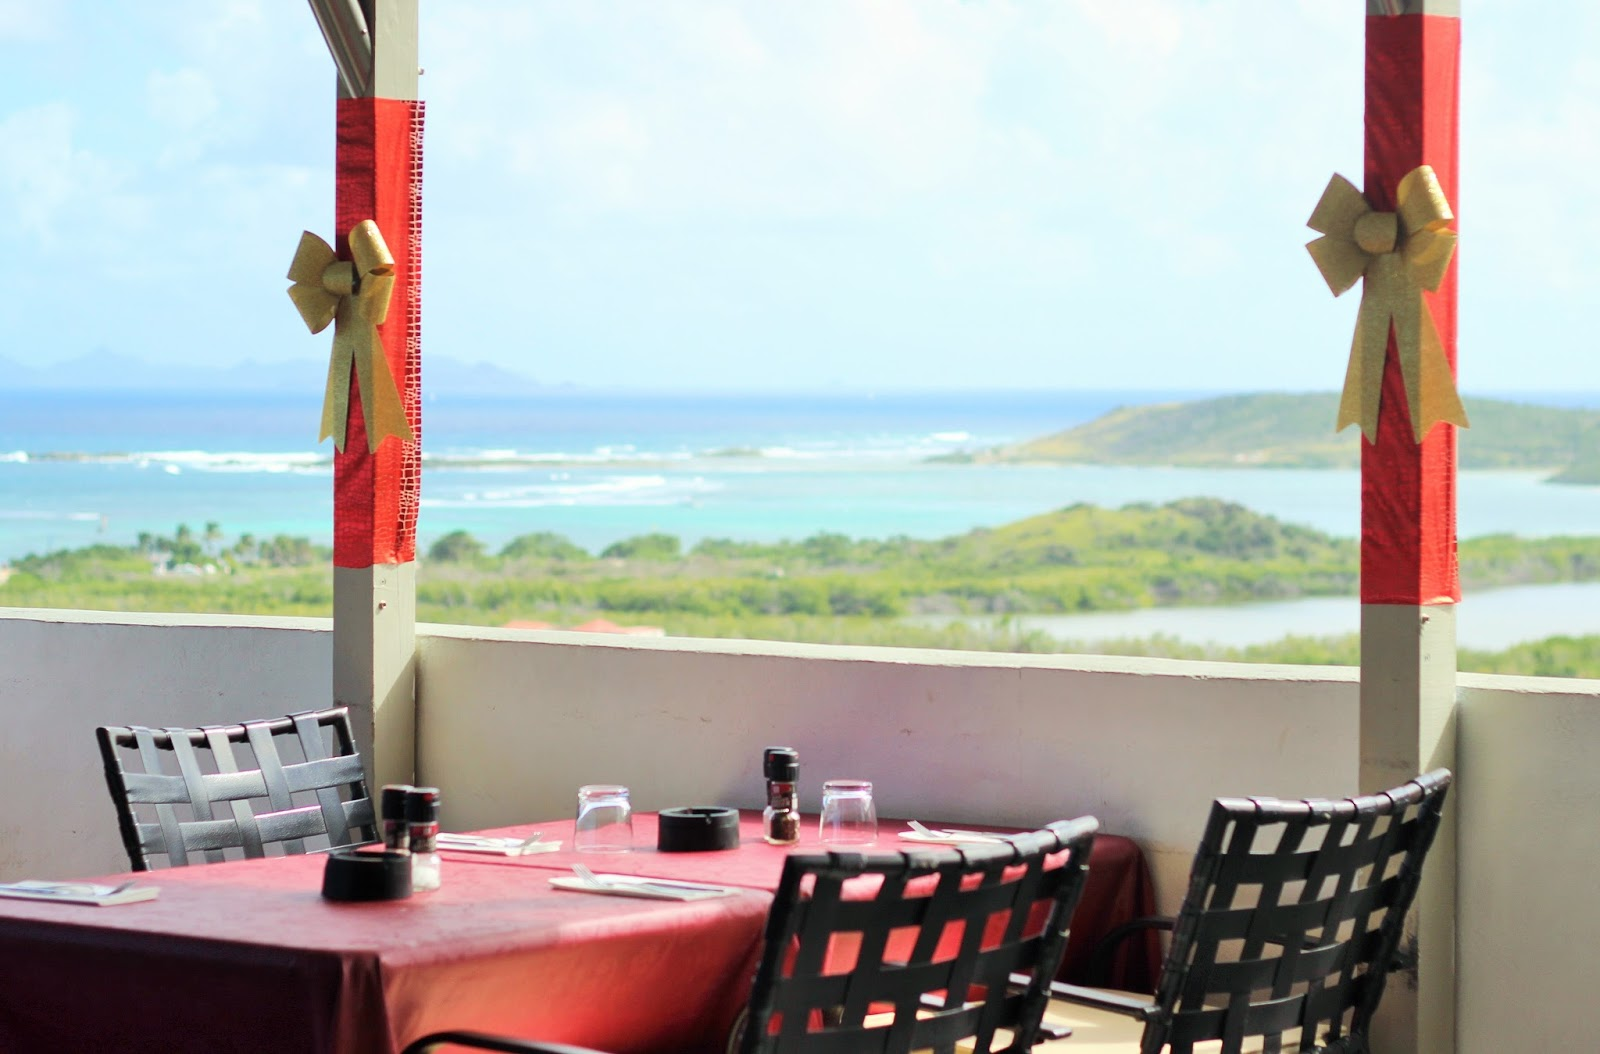 The Paradise View Restaurant in Sint Maarten